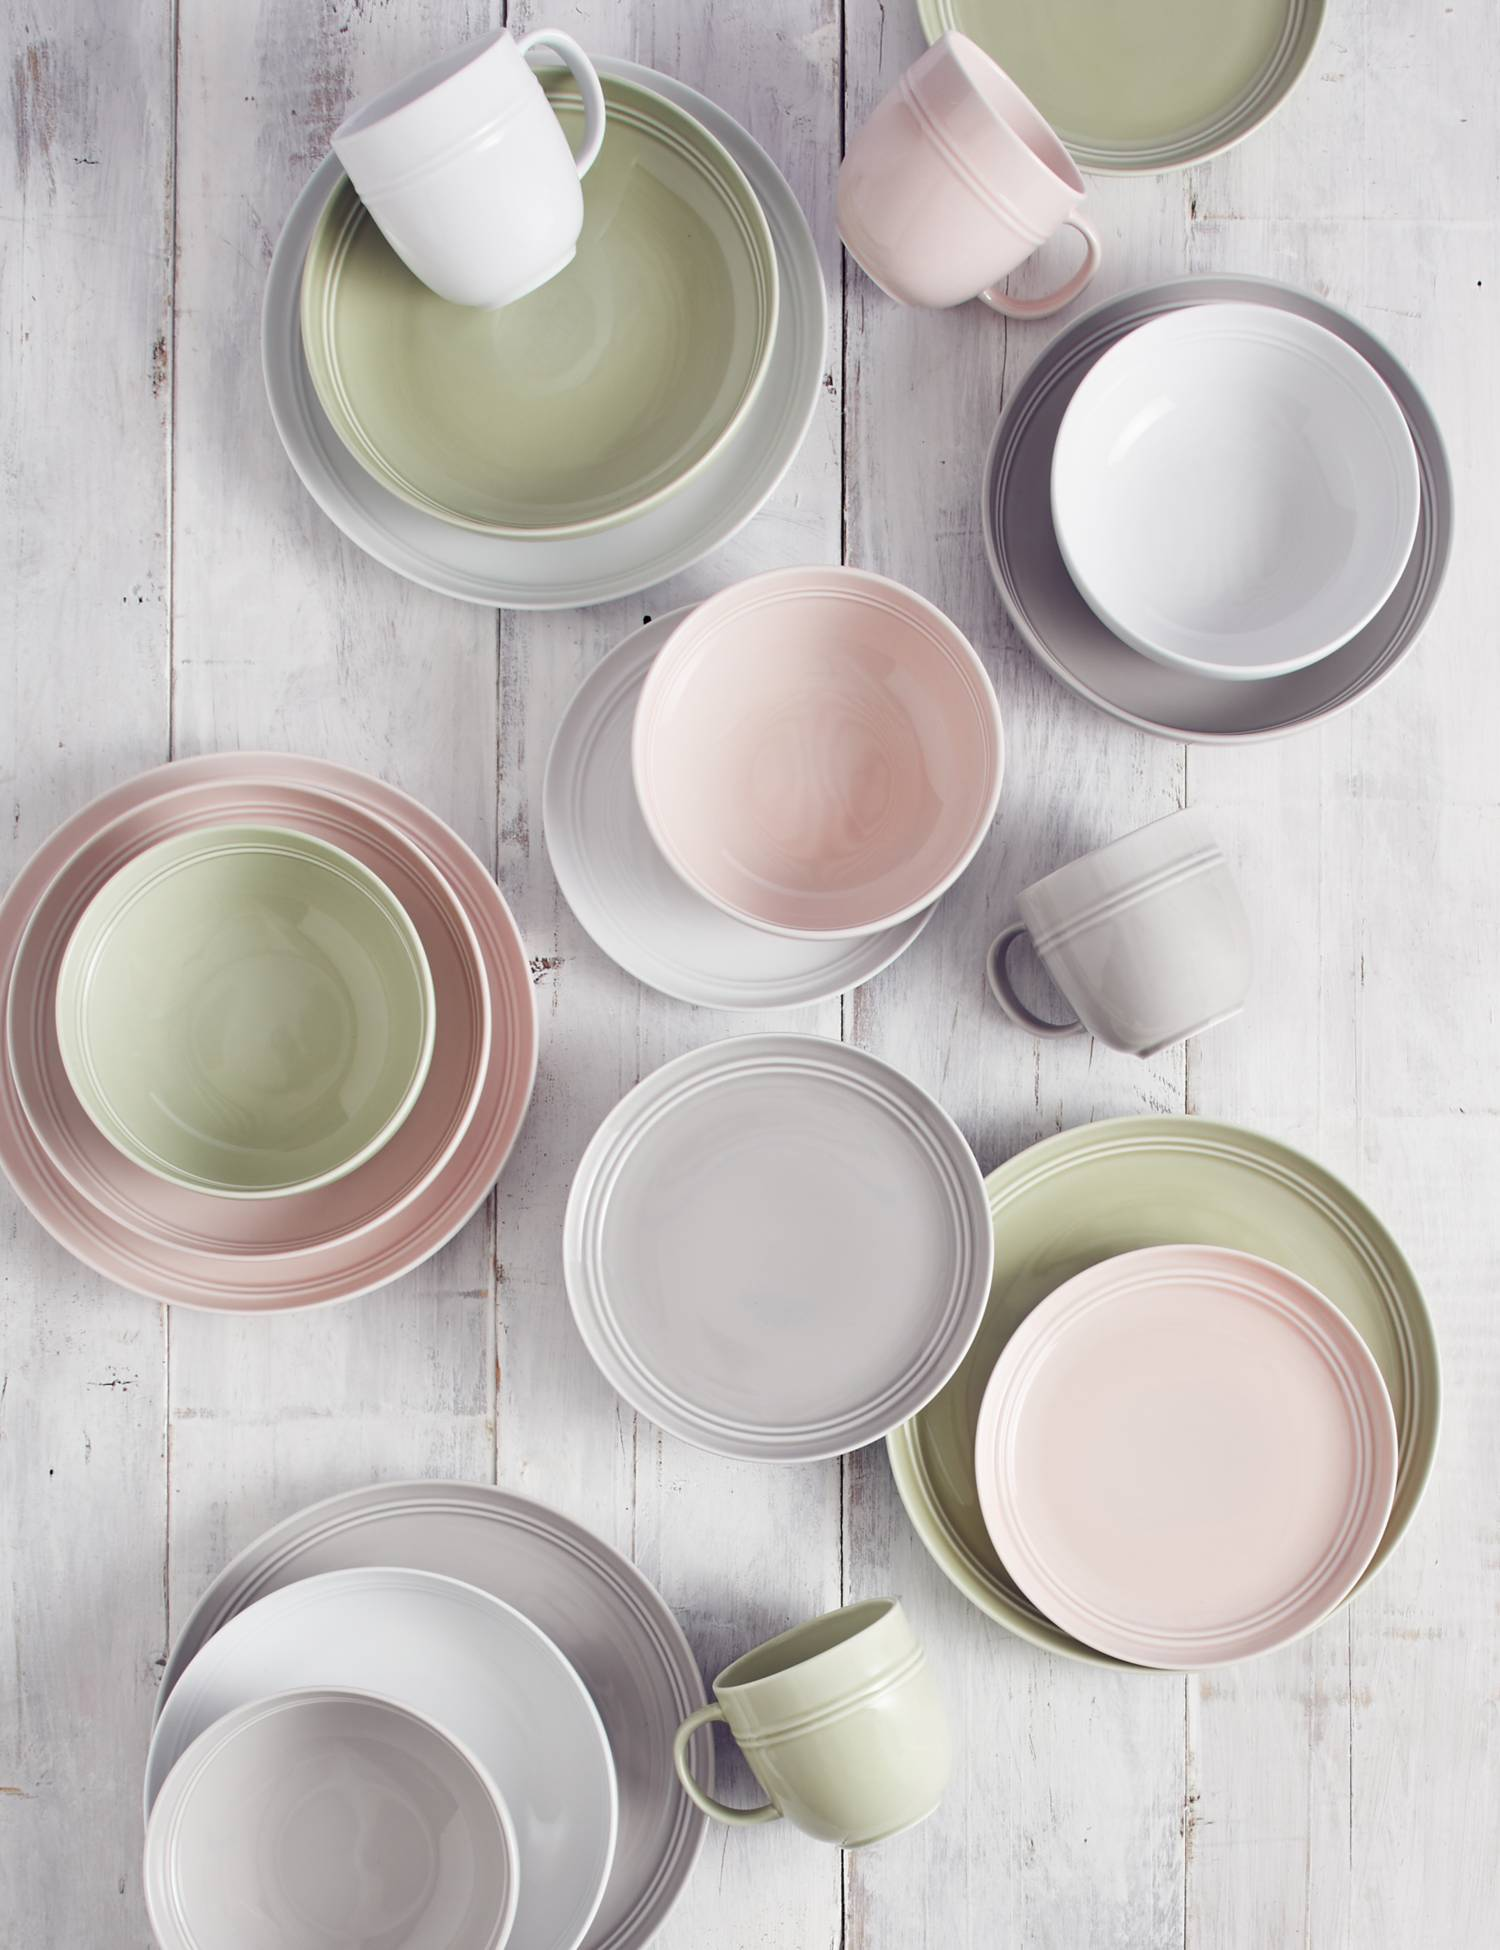 Marlowe Porcelain dinnerware exclusively at Marks & Spencer